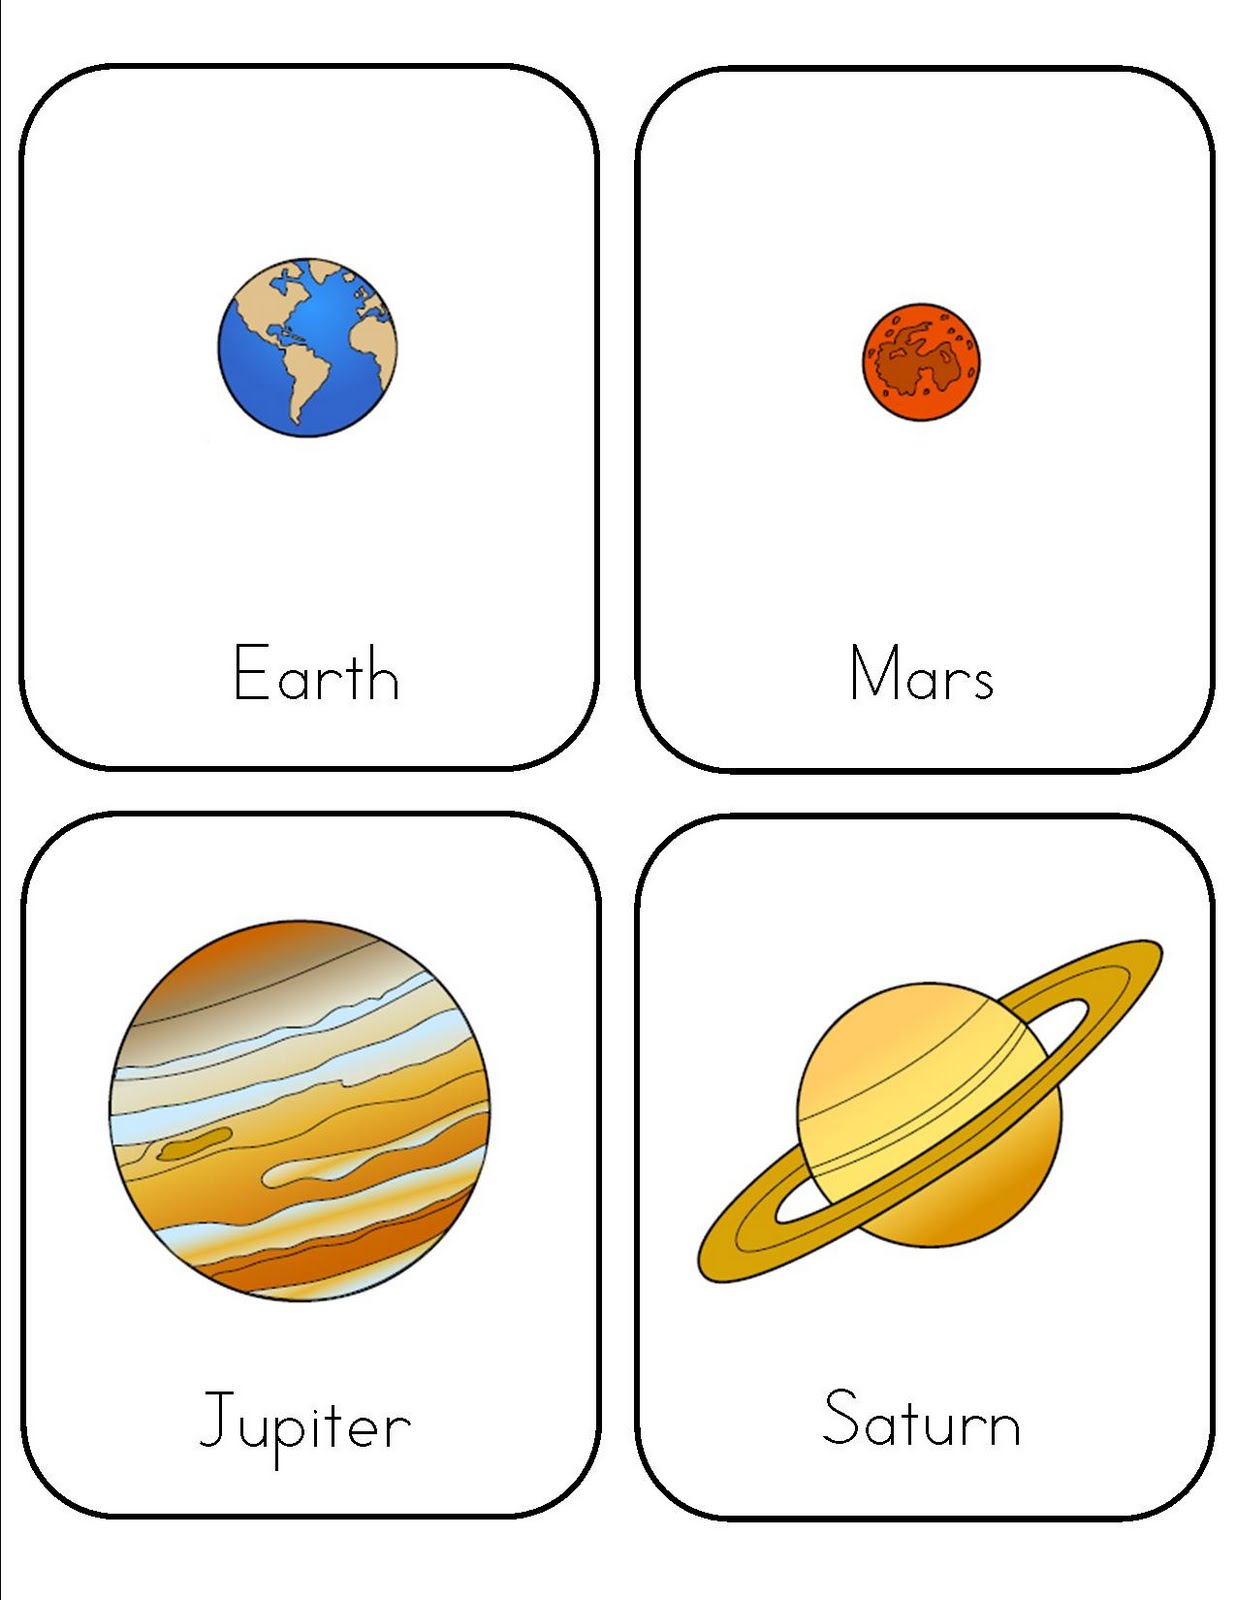 HD wallpapers planets for kindergarten worksheets